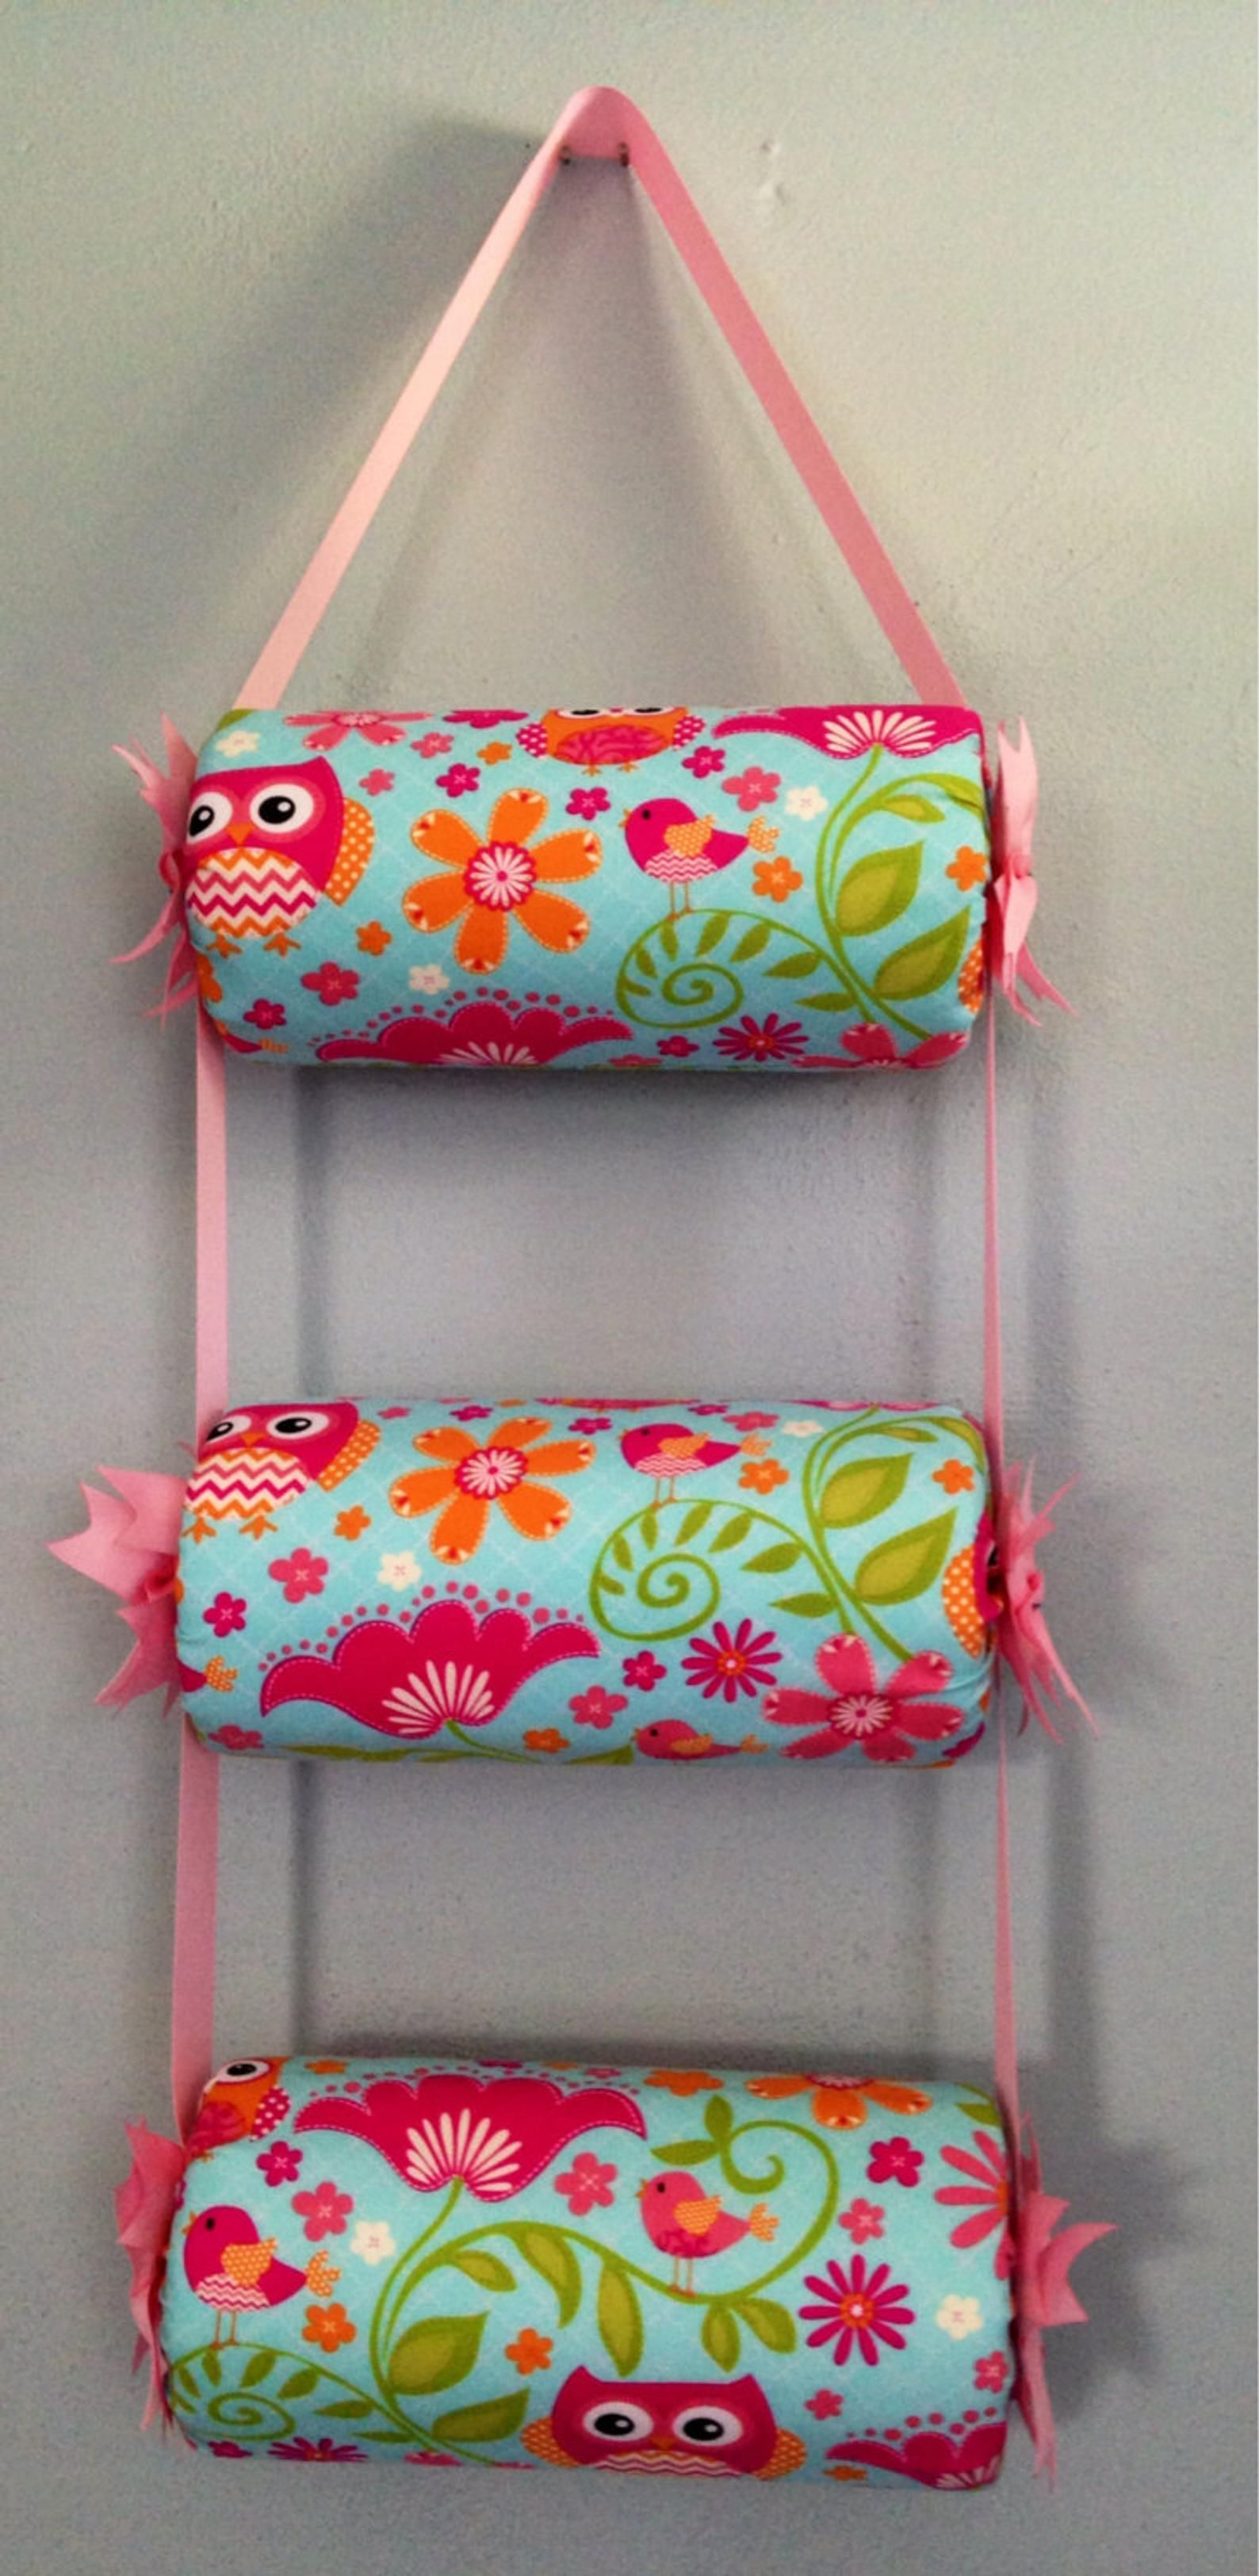 Headband Holder or head band organizer Pink & Light blue Owl Handmade Triple - 3 tiers